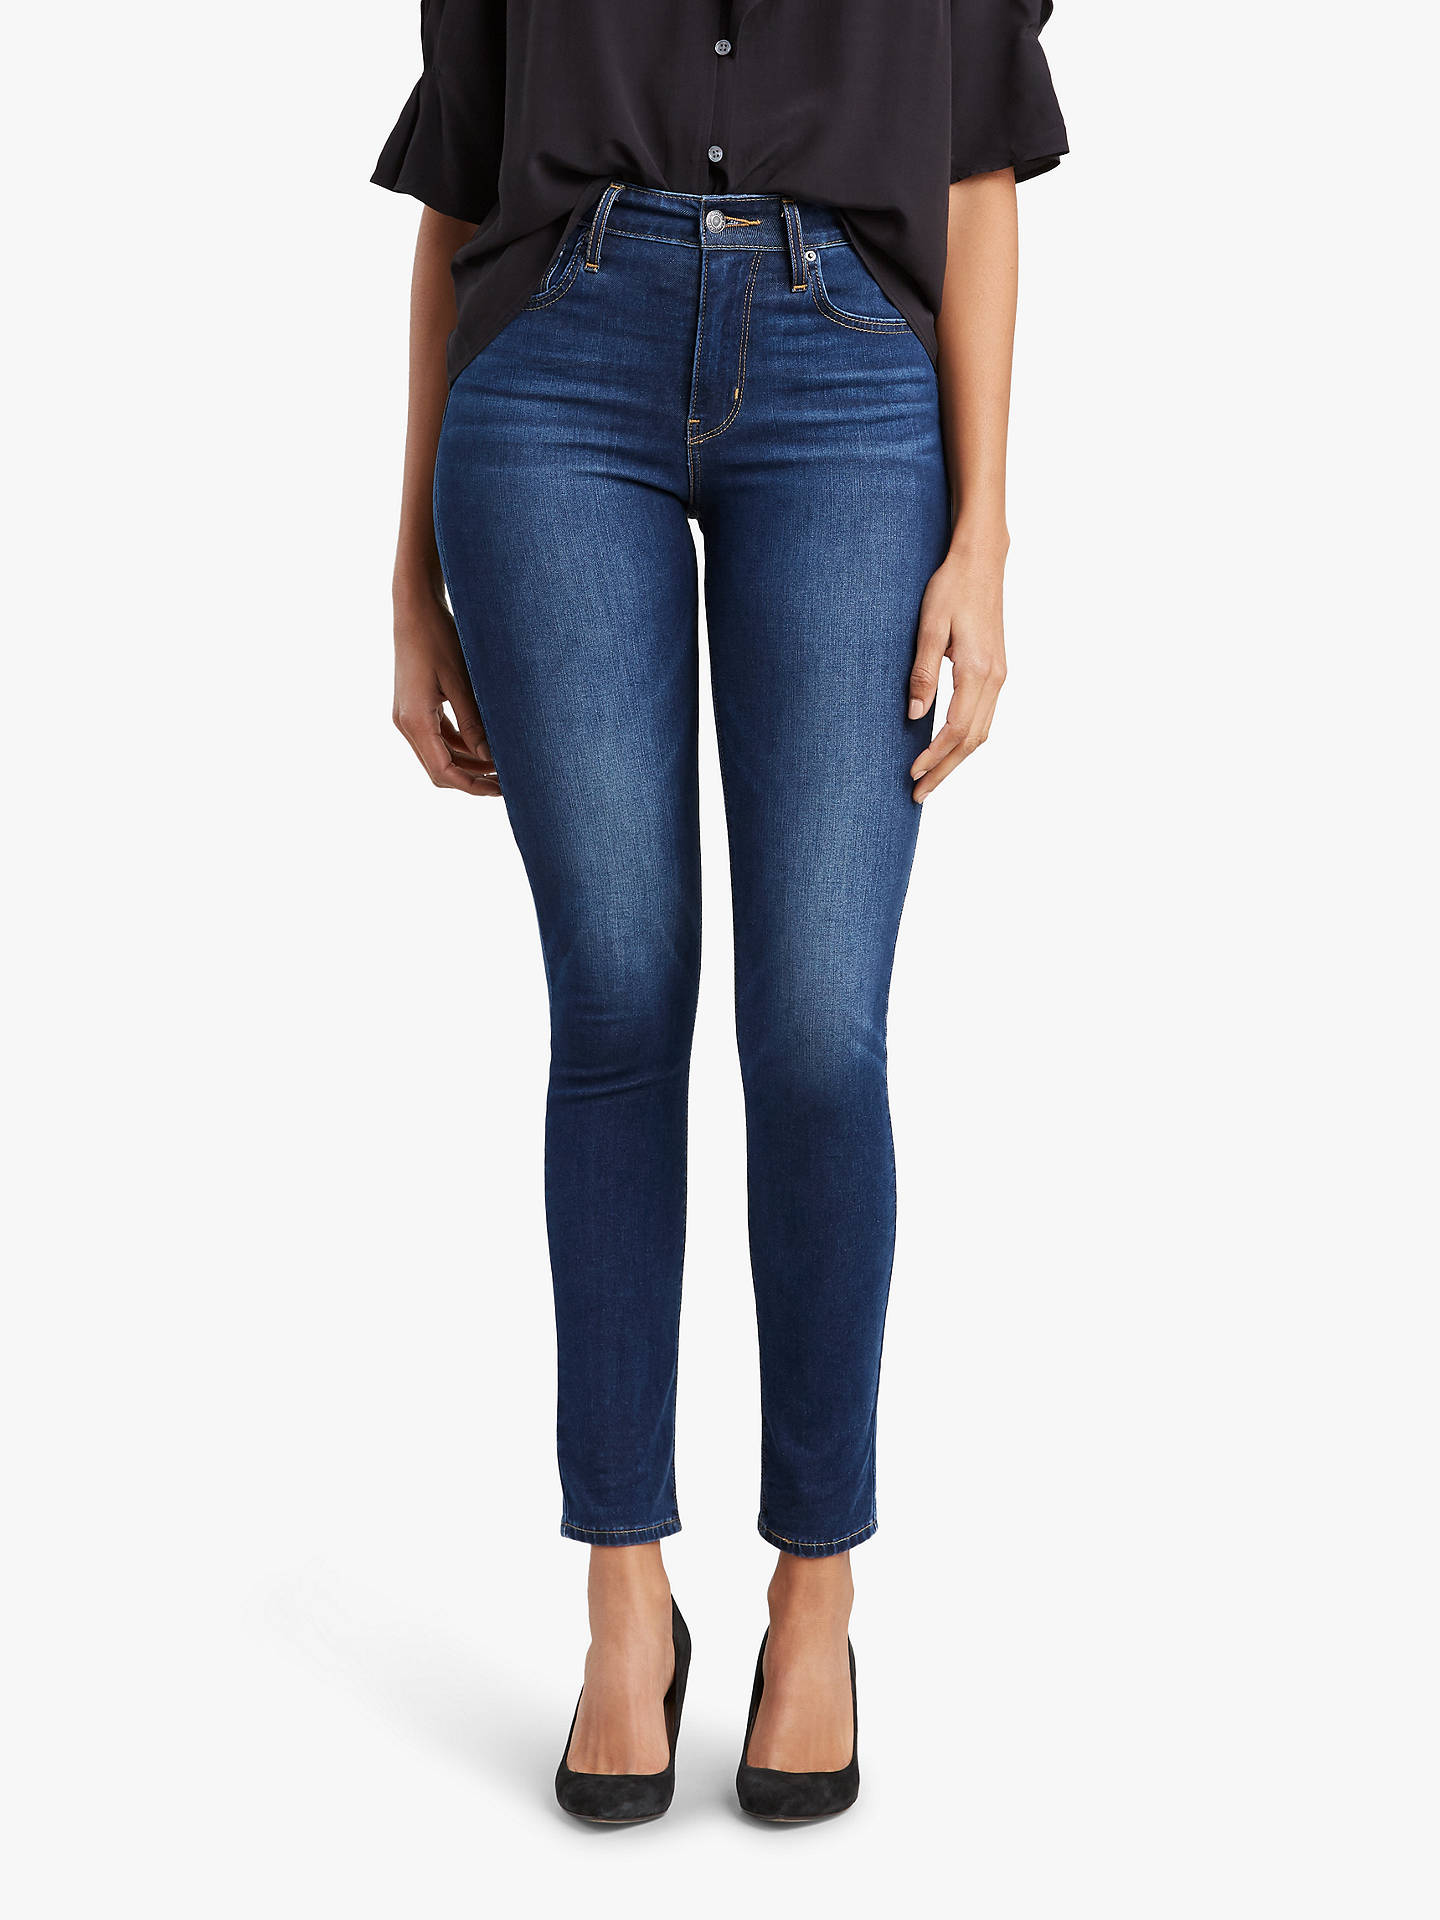 Levi's 721 High Rise Skinny Jeans, Up For Grabs by Levi's